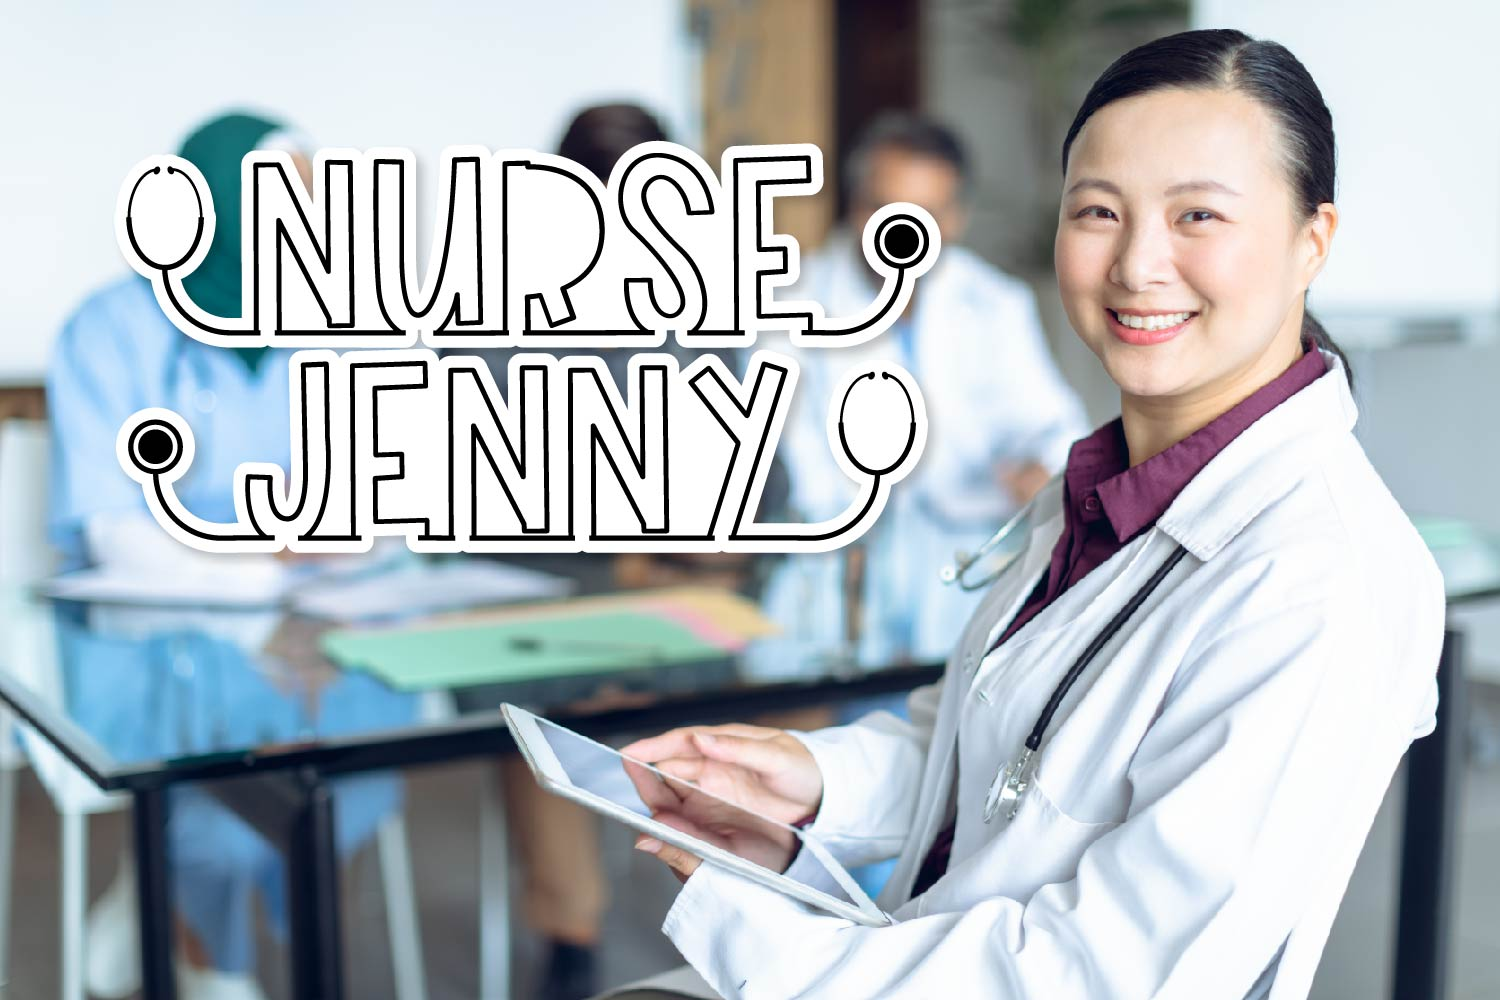 Clinicals - A Stethoscope Font Perfect for Nurses! example image 4